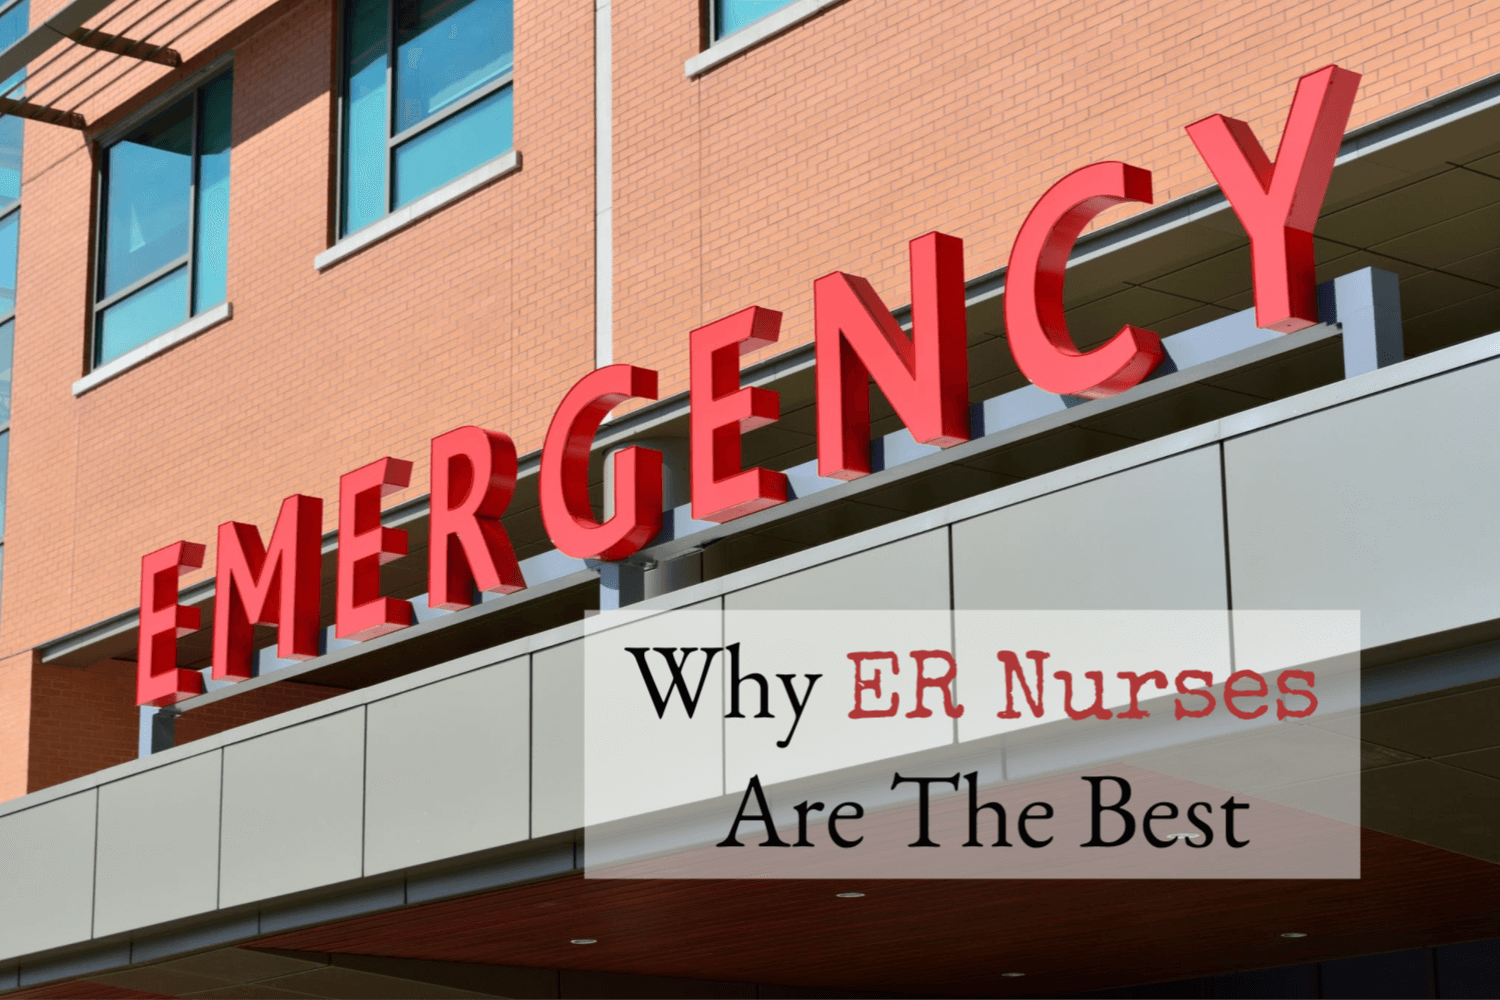 Why ER Nurses Are The Best